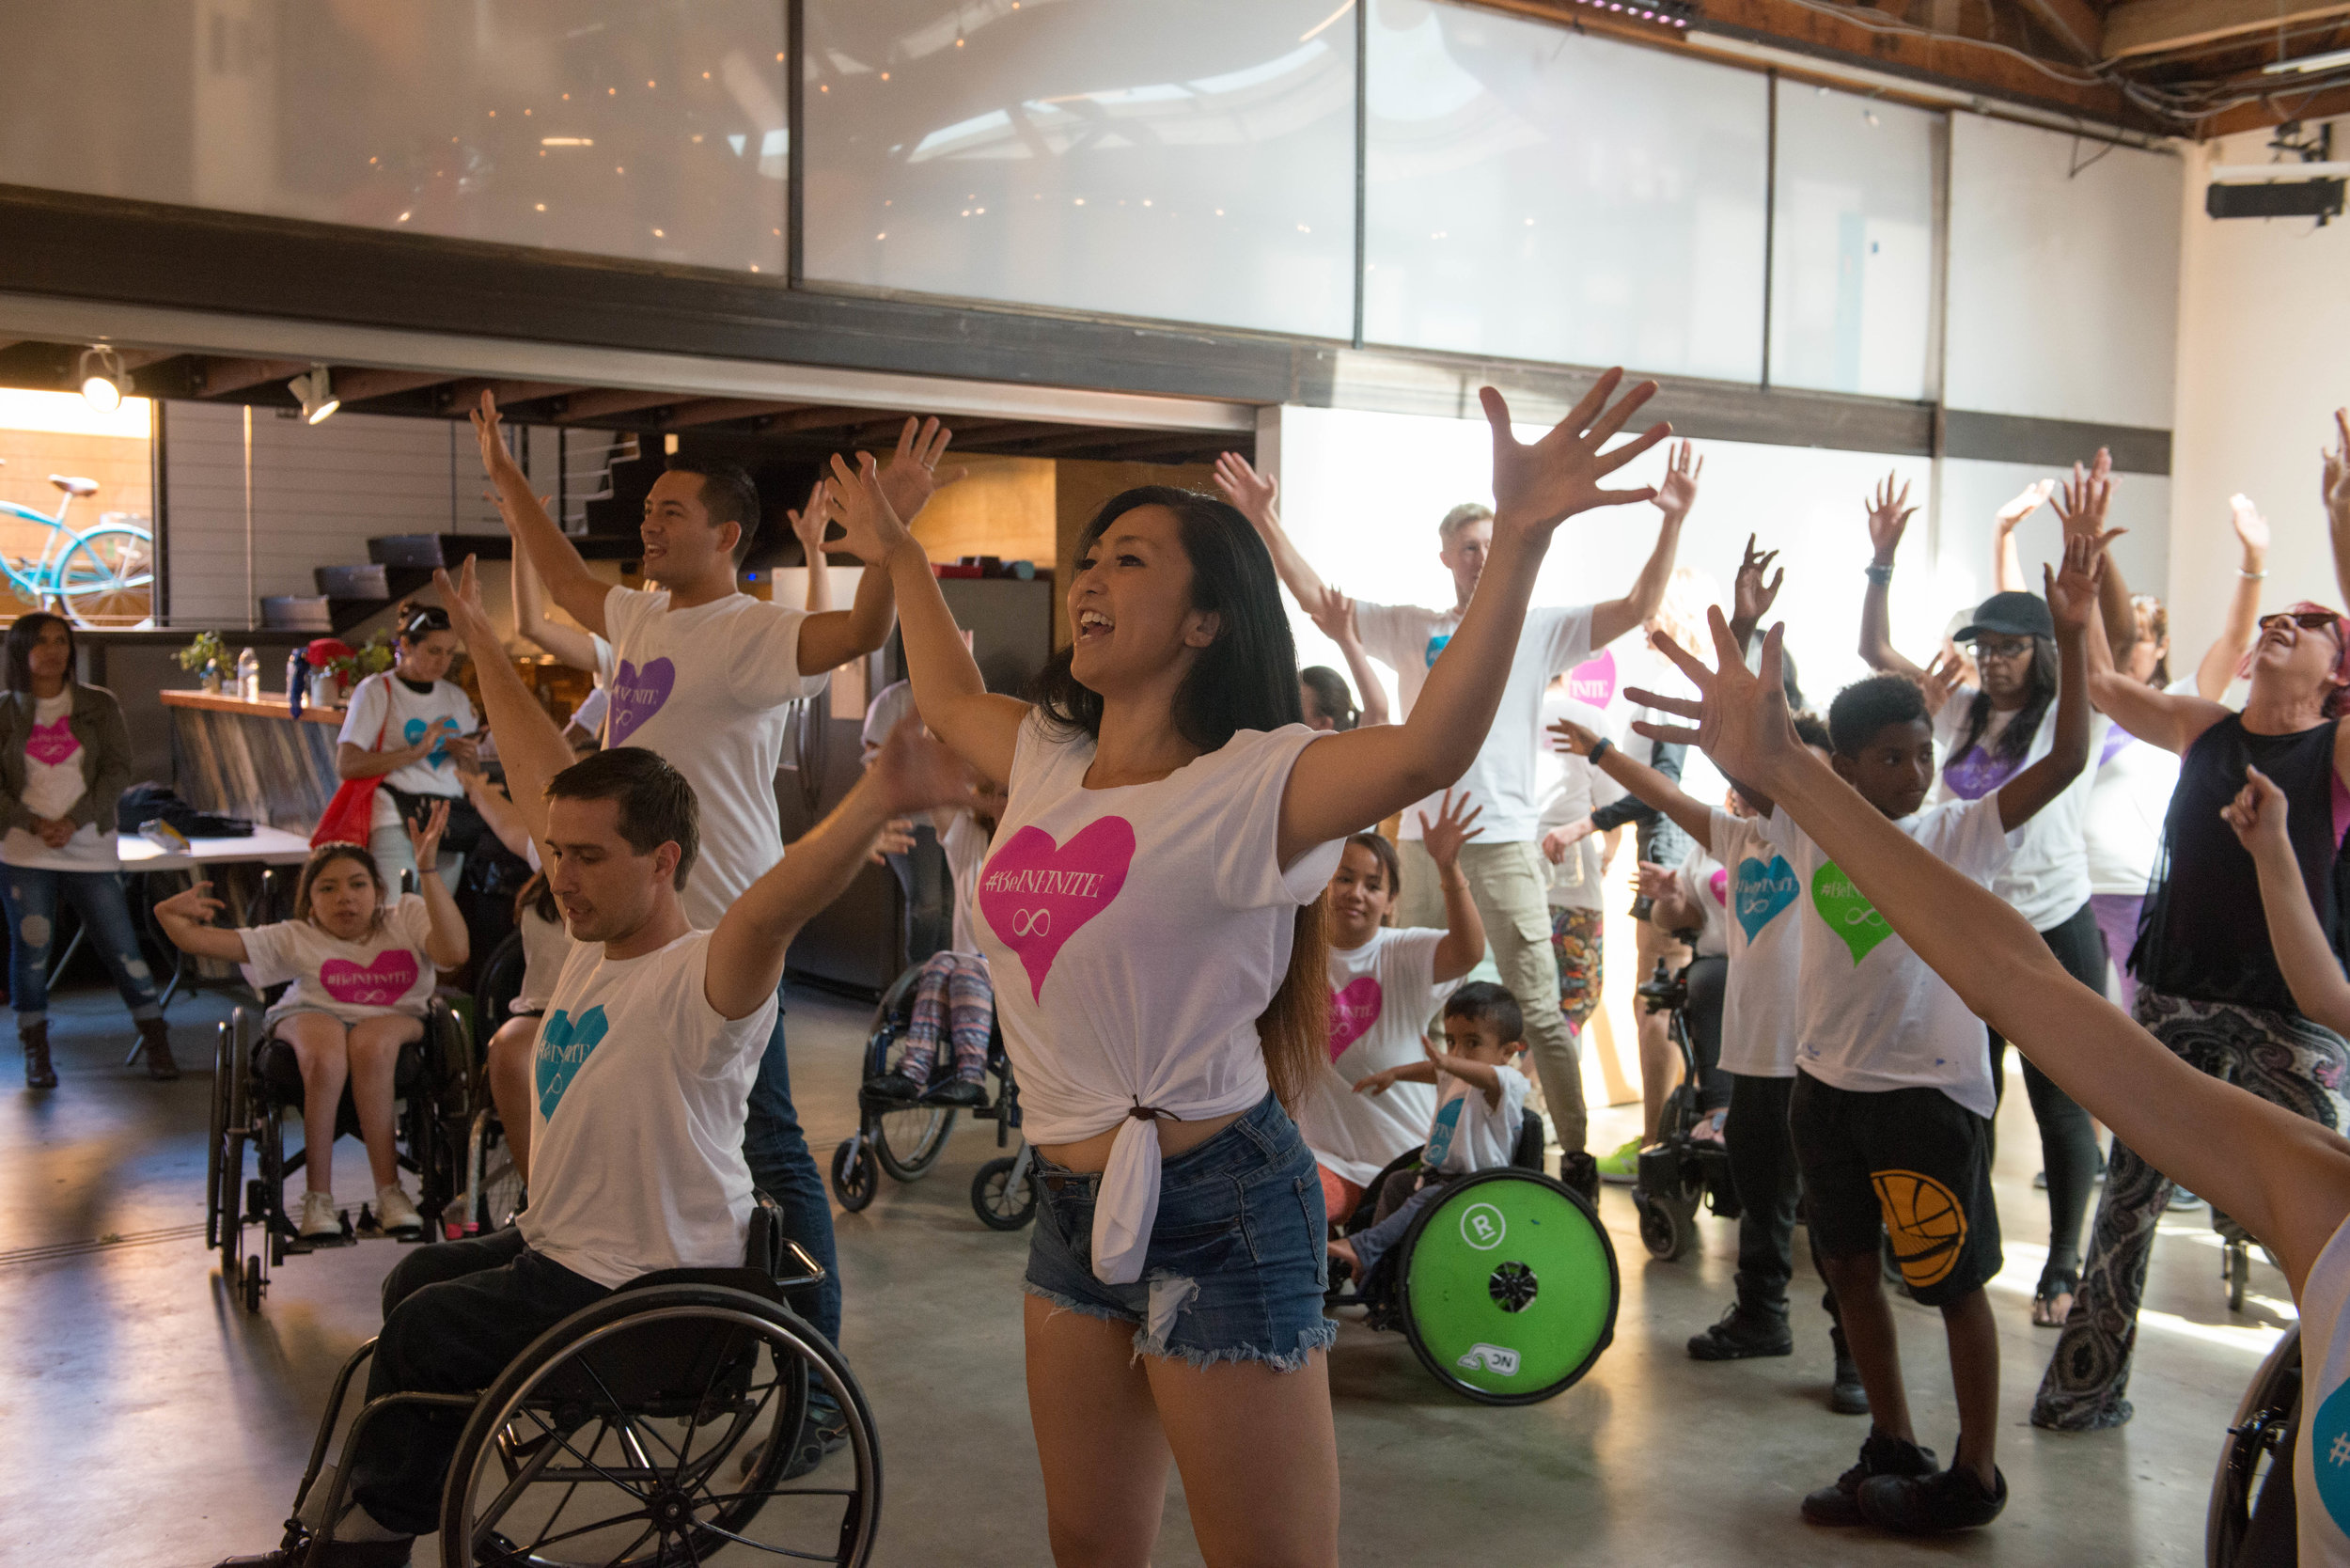 Marisa leading an inclusive all abilities flashmob rehearsal for Infinite Flow